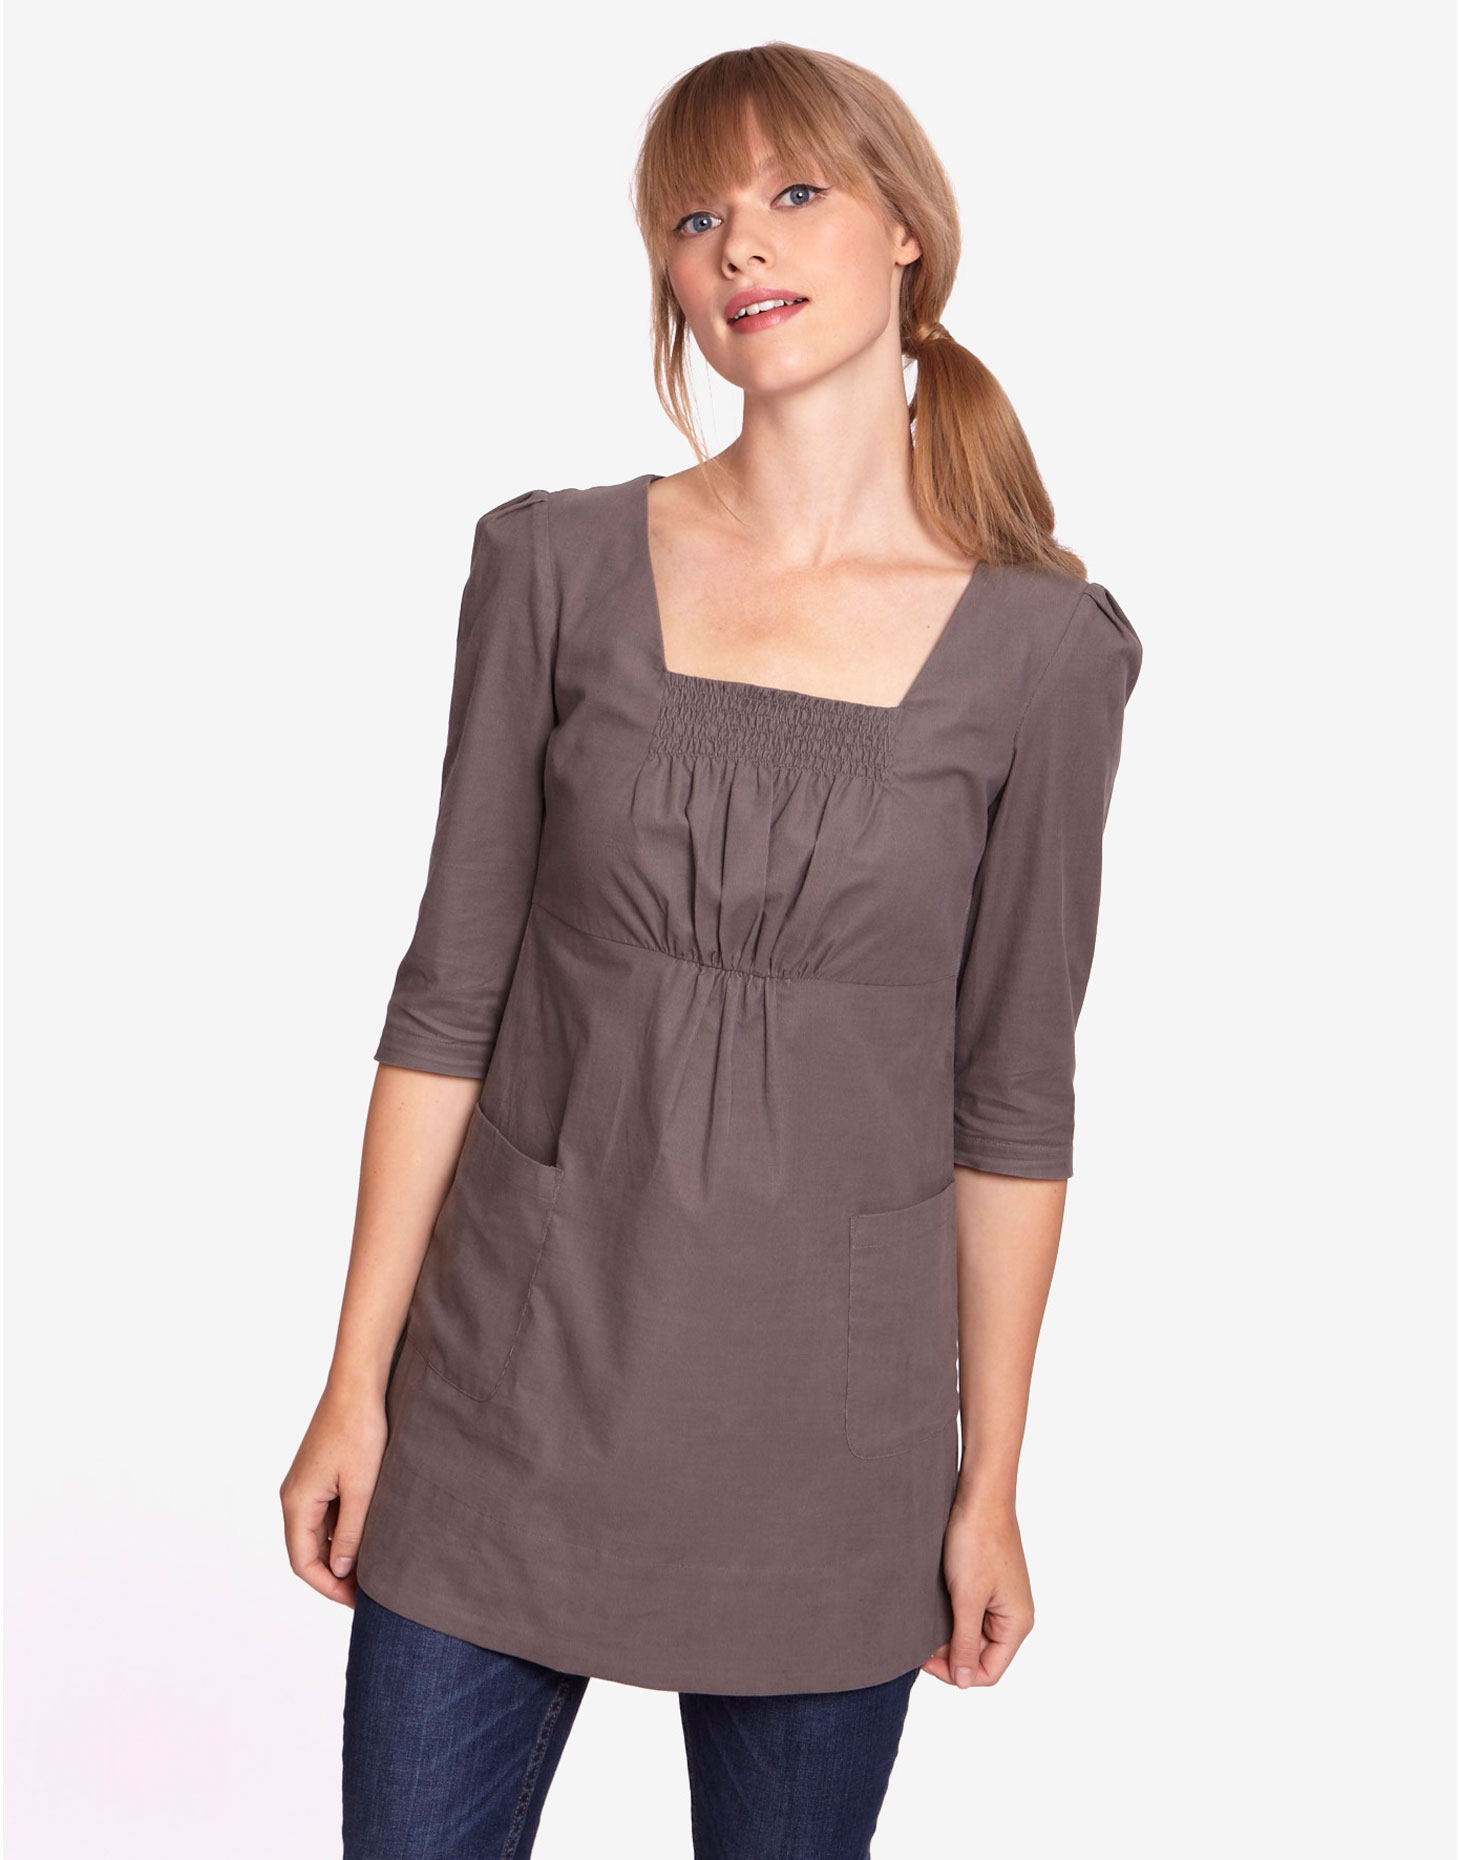 Tunic Tops for Women – Fun, Stylish and Trendy – Carey Fashion ...